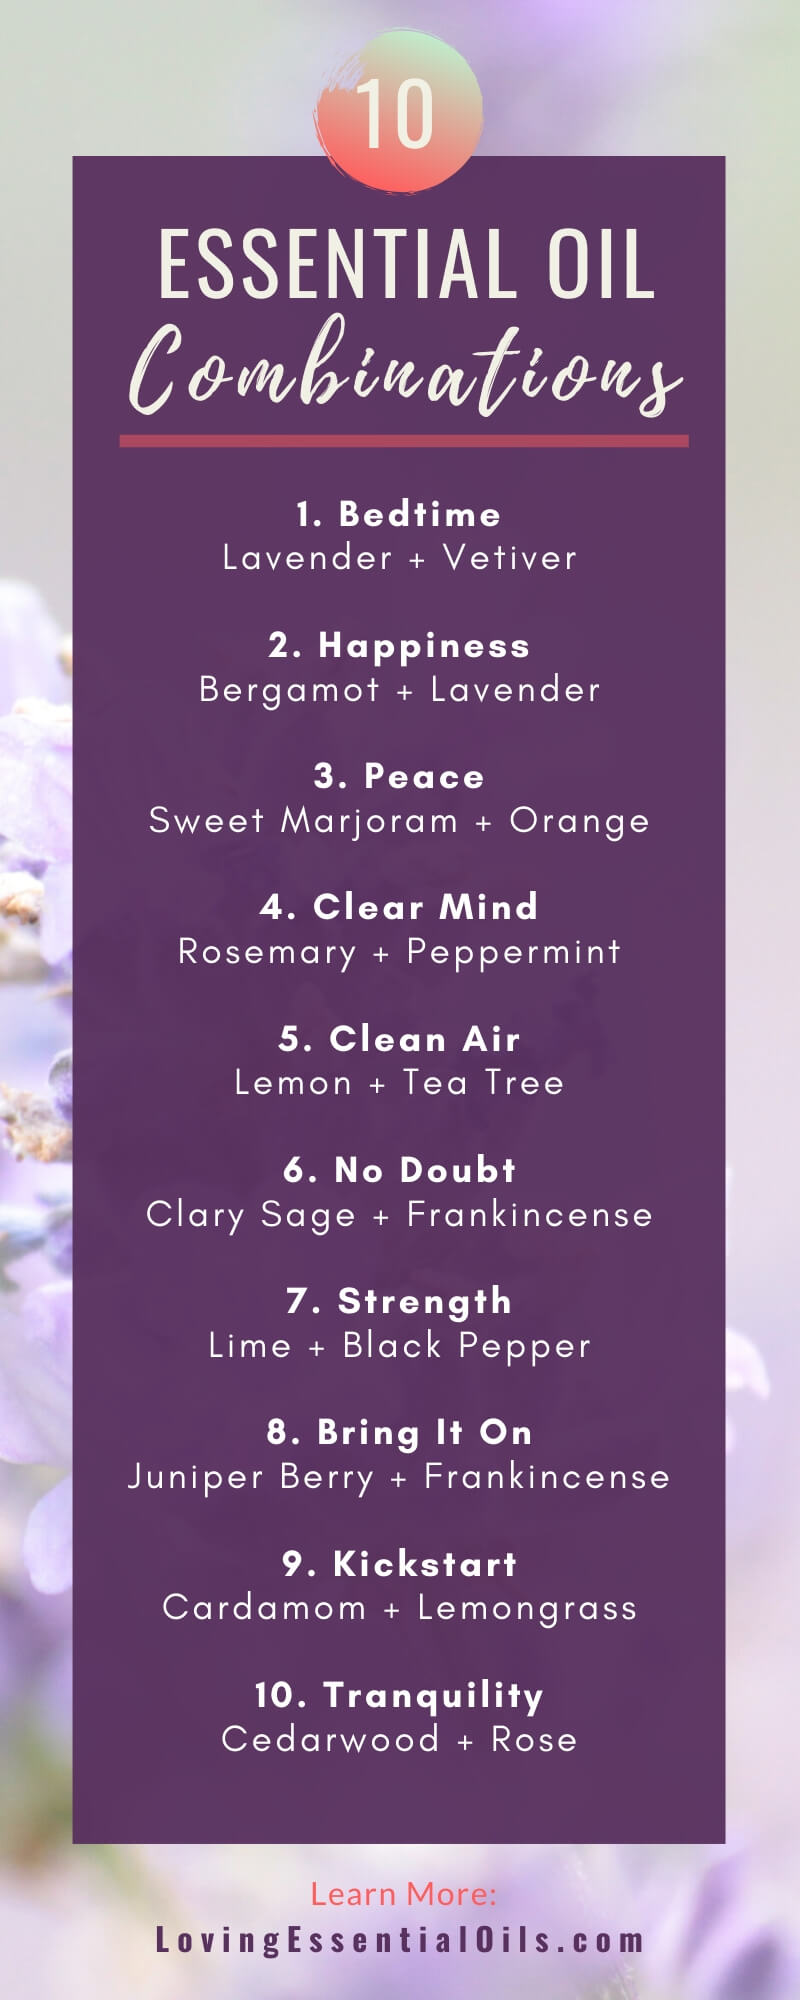 20 Simple Essential Oil Combinations For Diffuser by Loving Essential Oils | Pinterest Infographic